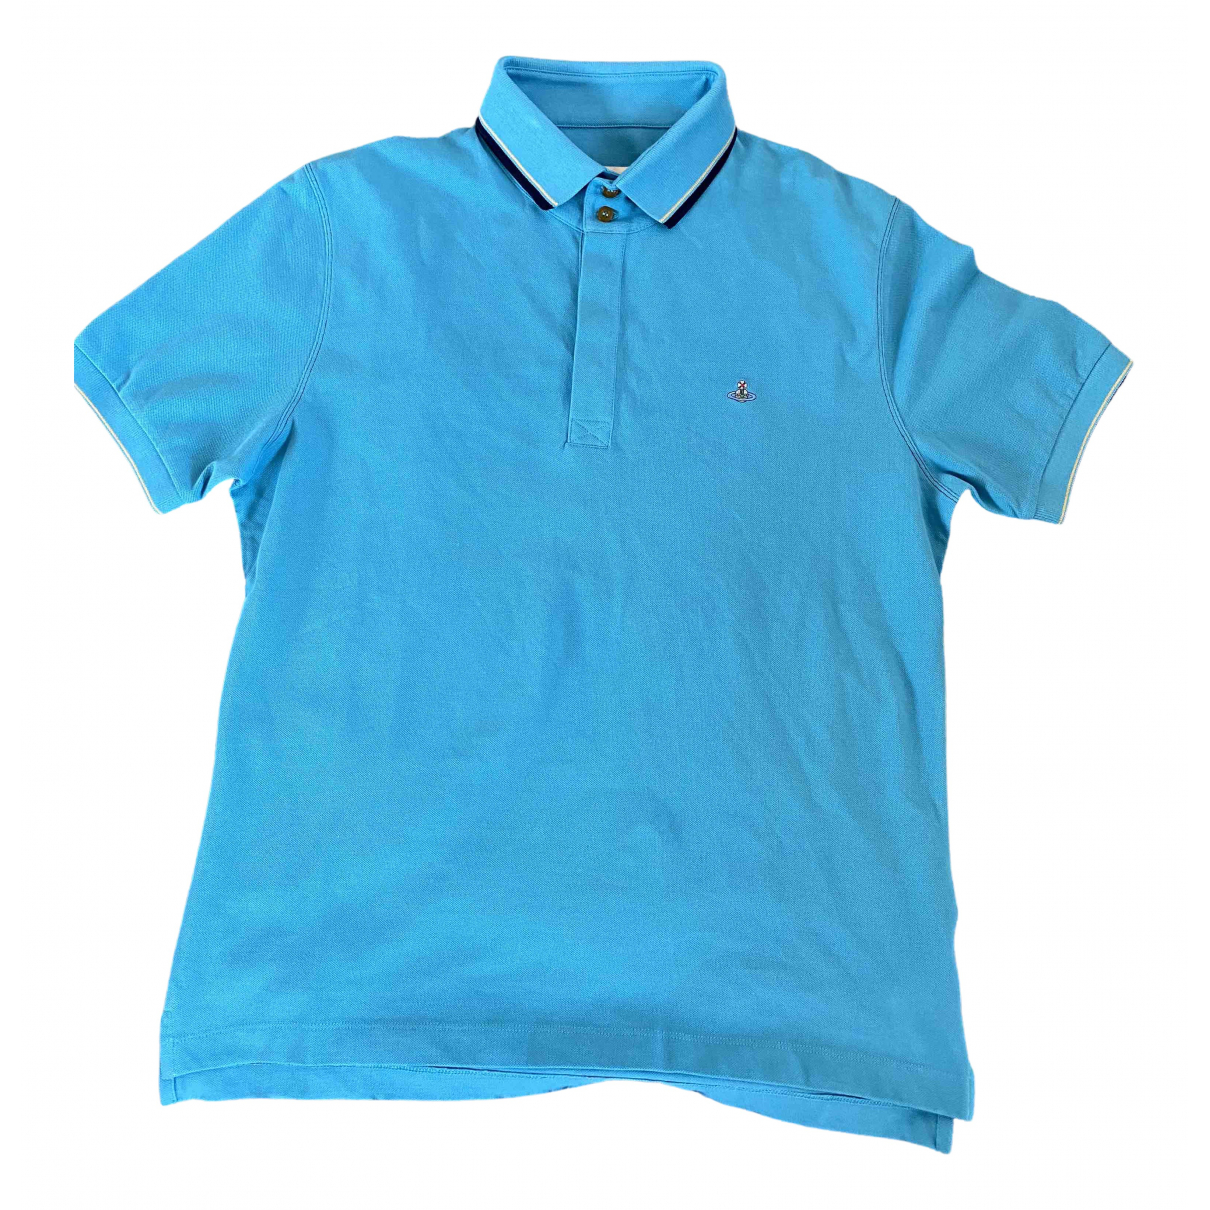 Vivienne Westwood \N Turquoise Cotton Polo shirts for Men L International